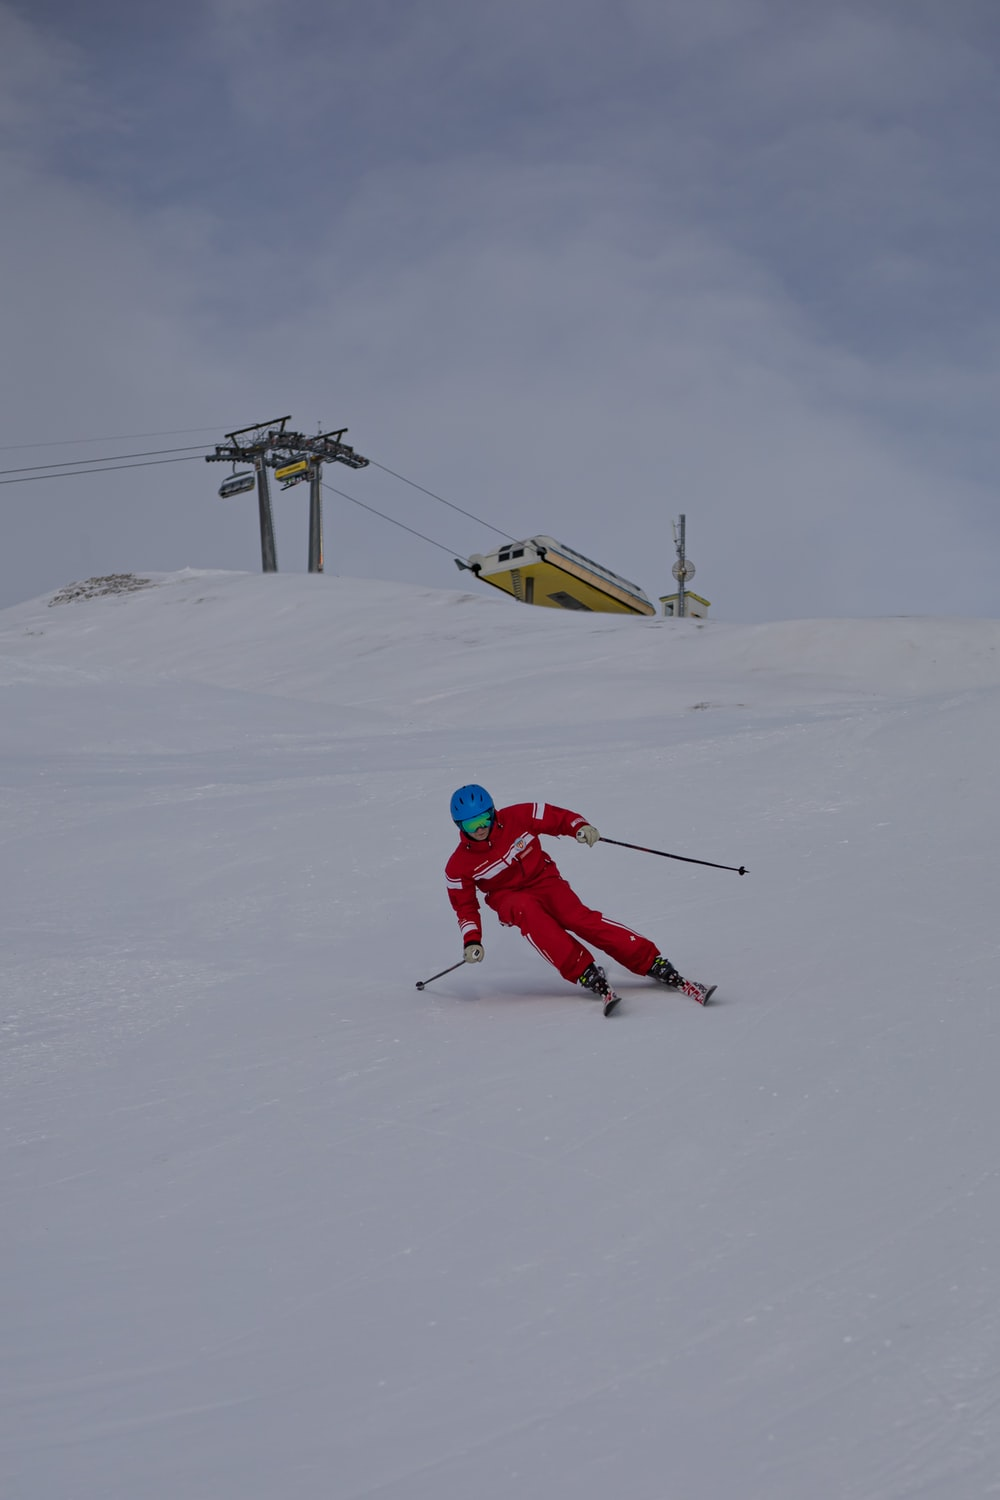 person in red jacket and red pants riding snow ski